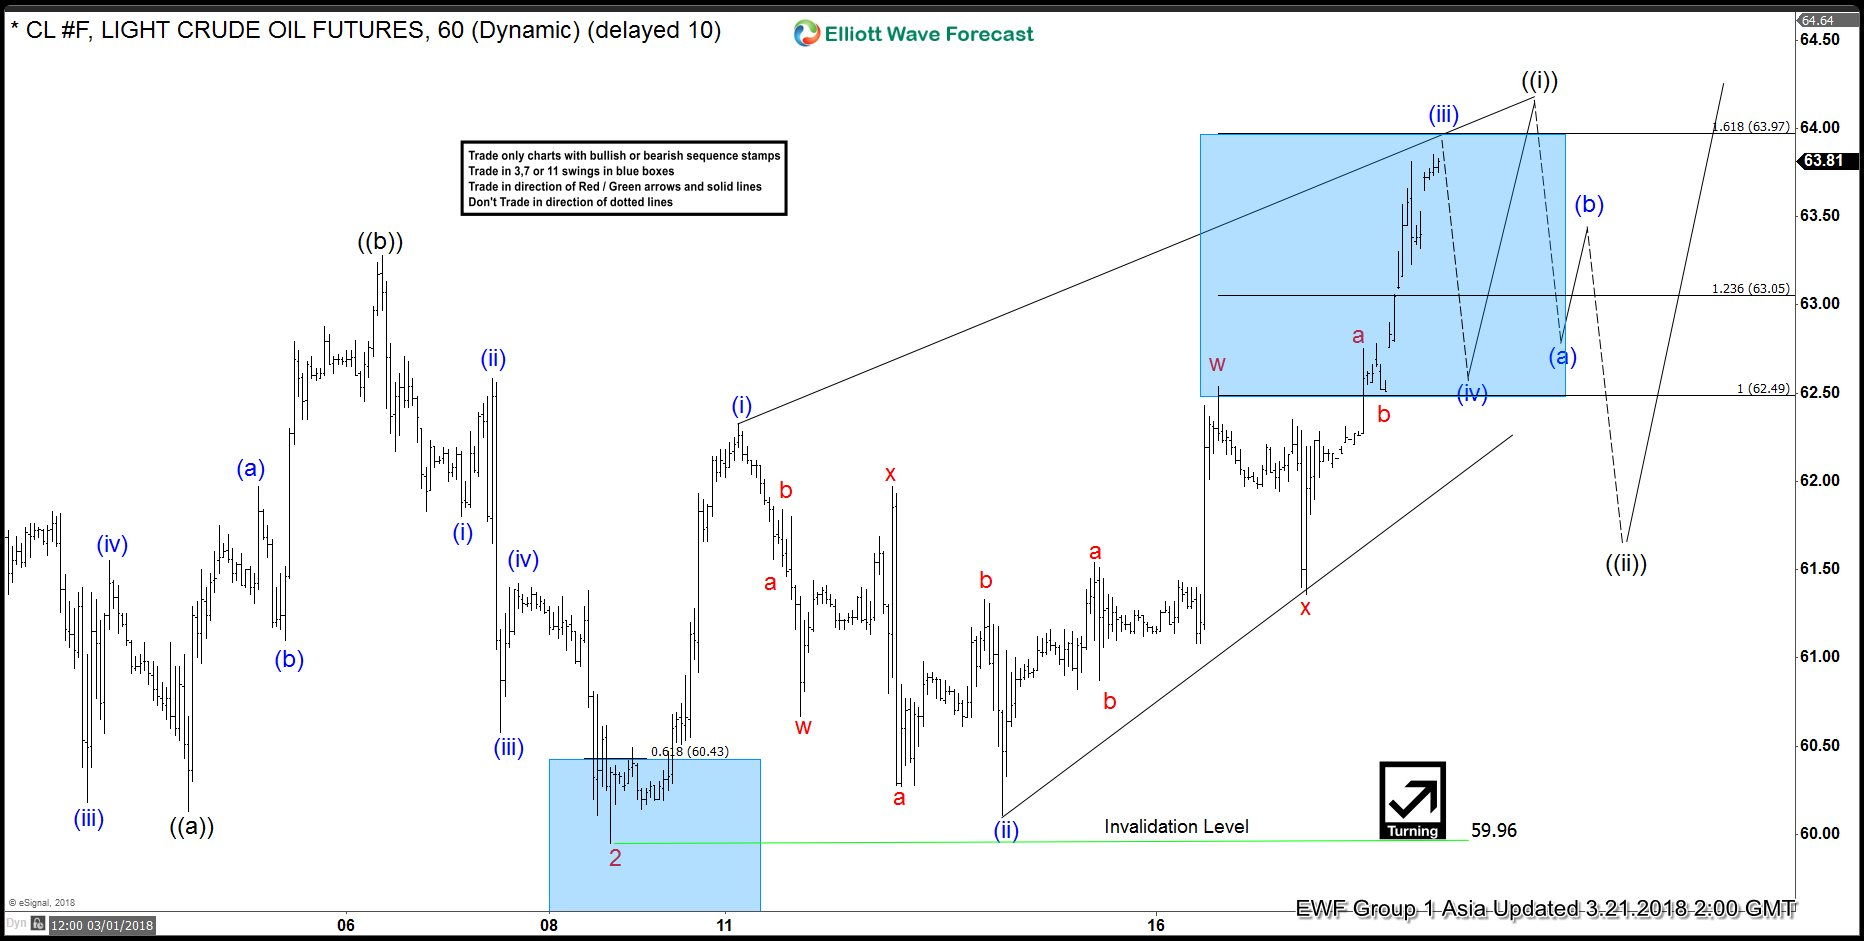 Elliott Wave Analysis: Oil (CL_F) Looking to Extend Higher in Wave 3